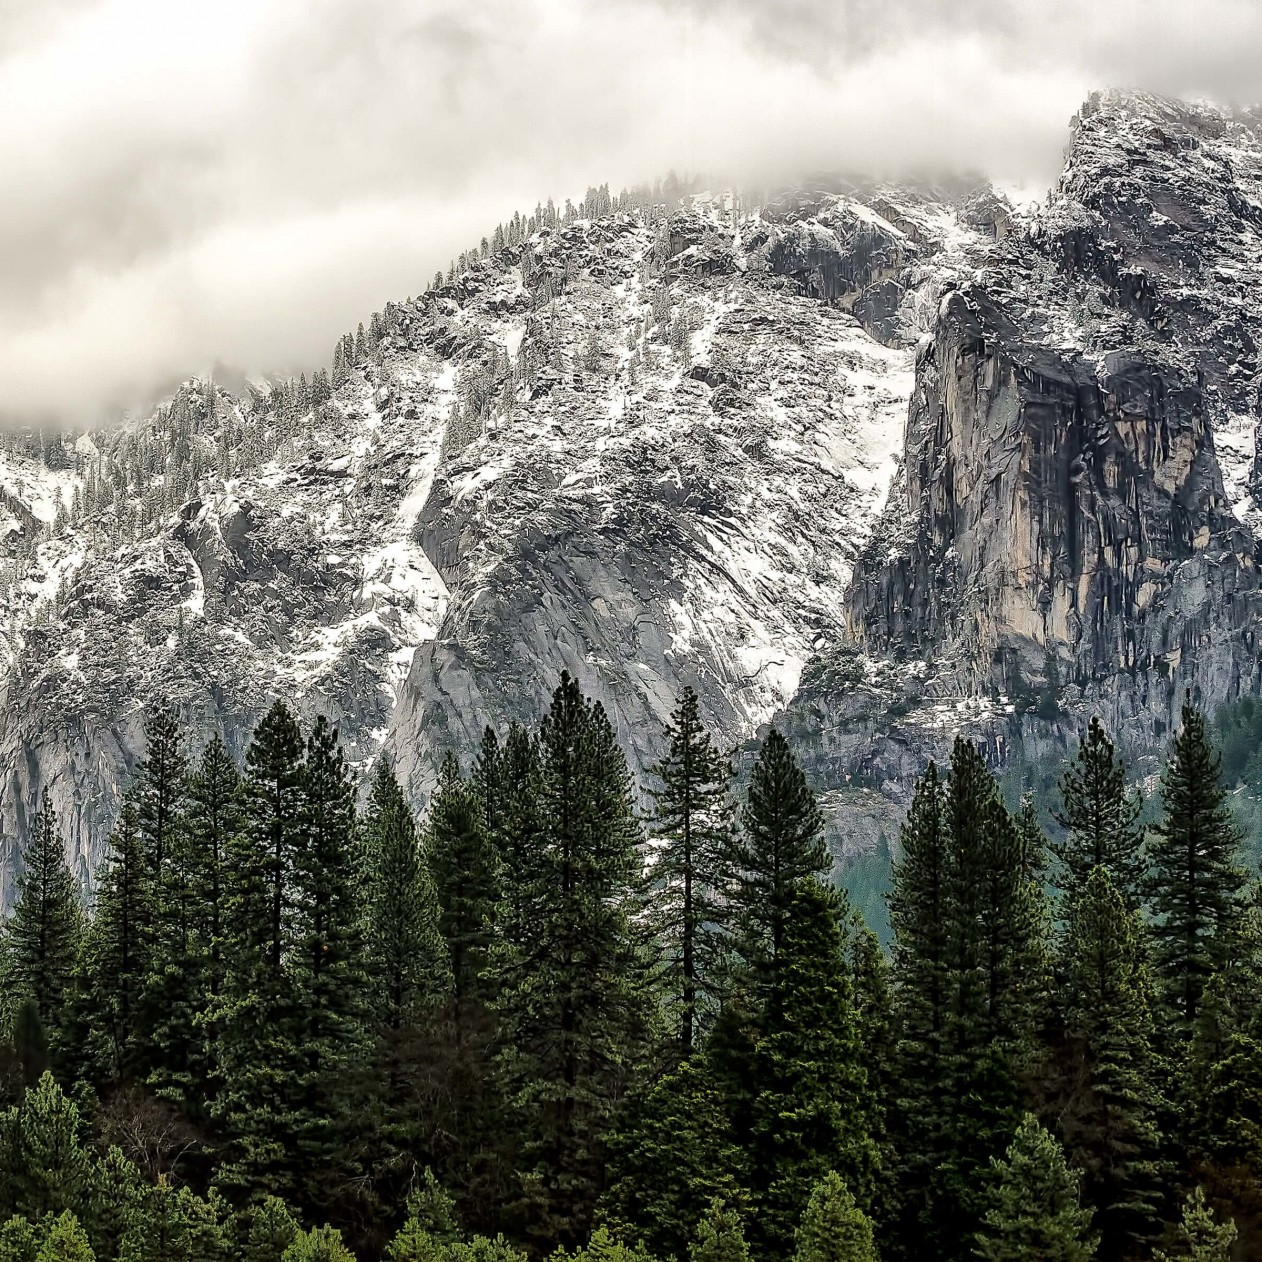 Winter Day at Yosemite National Park Wallpaper for Apple iPad mini